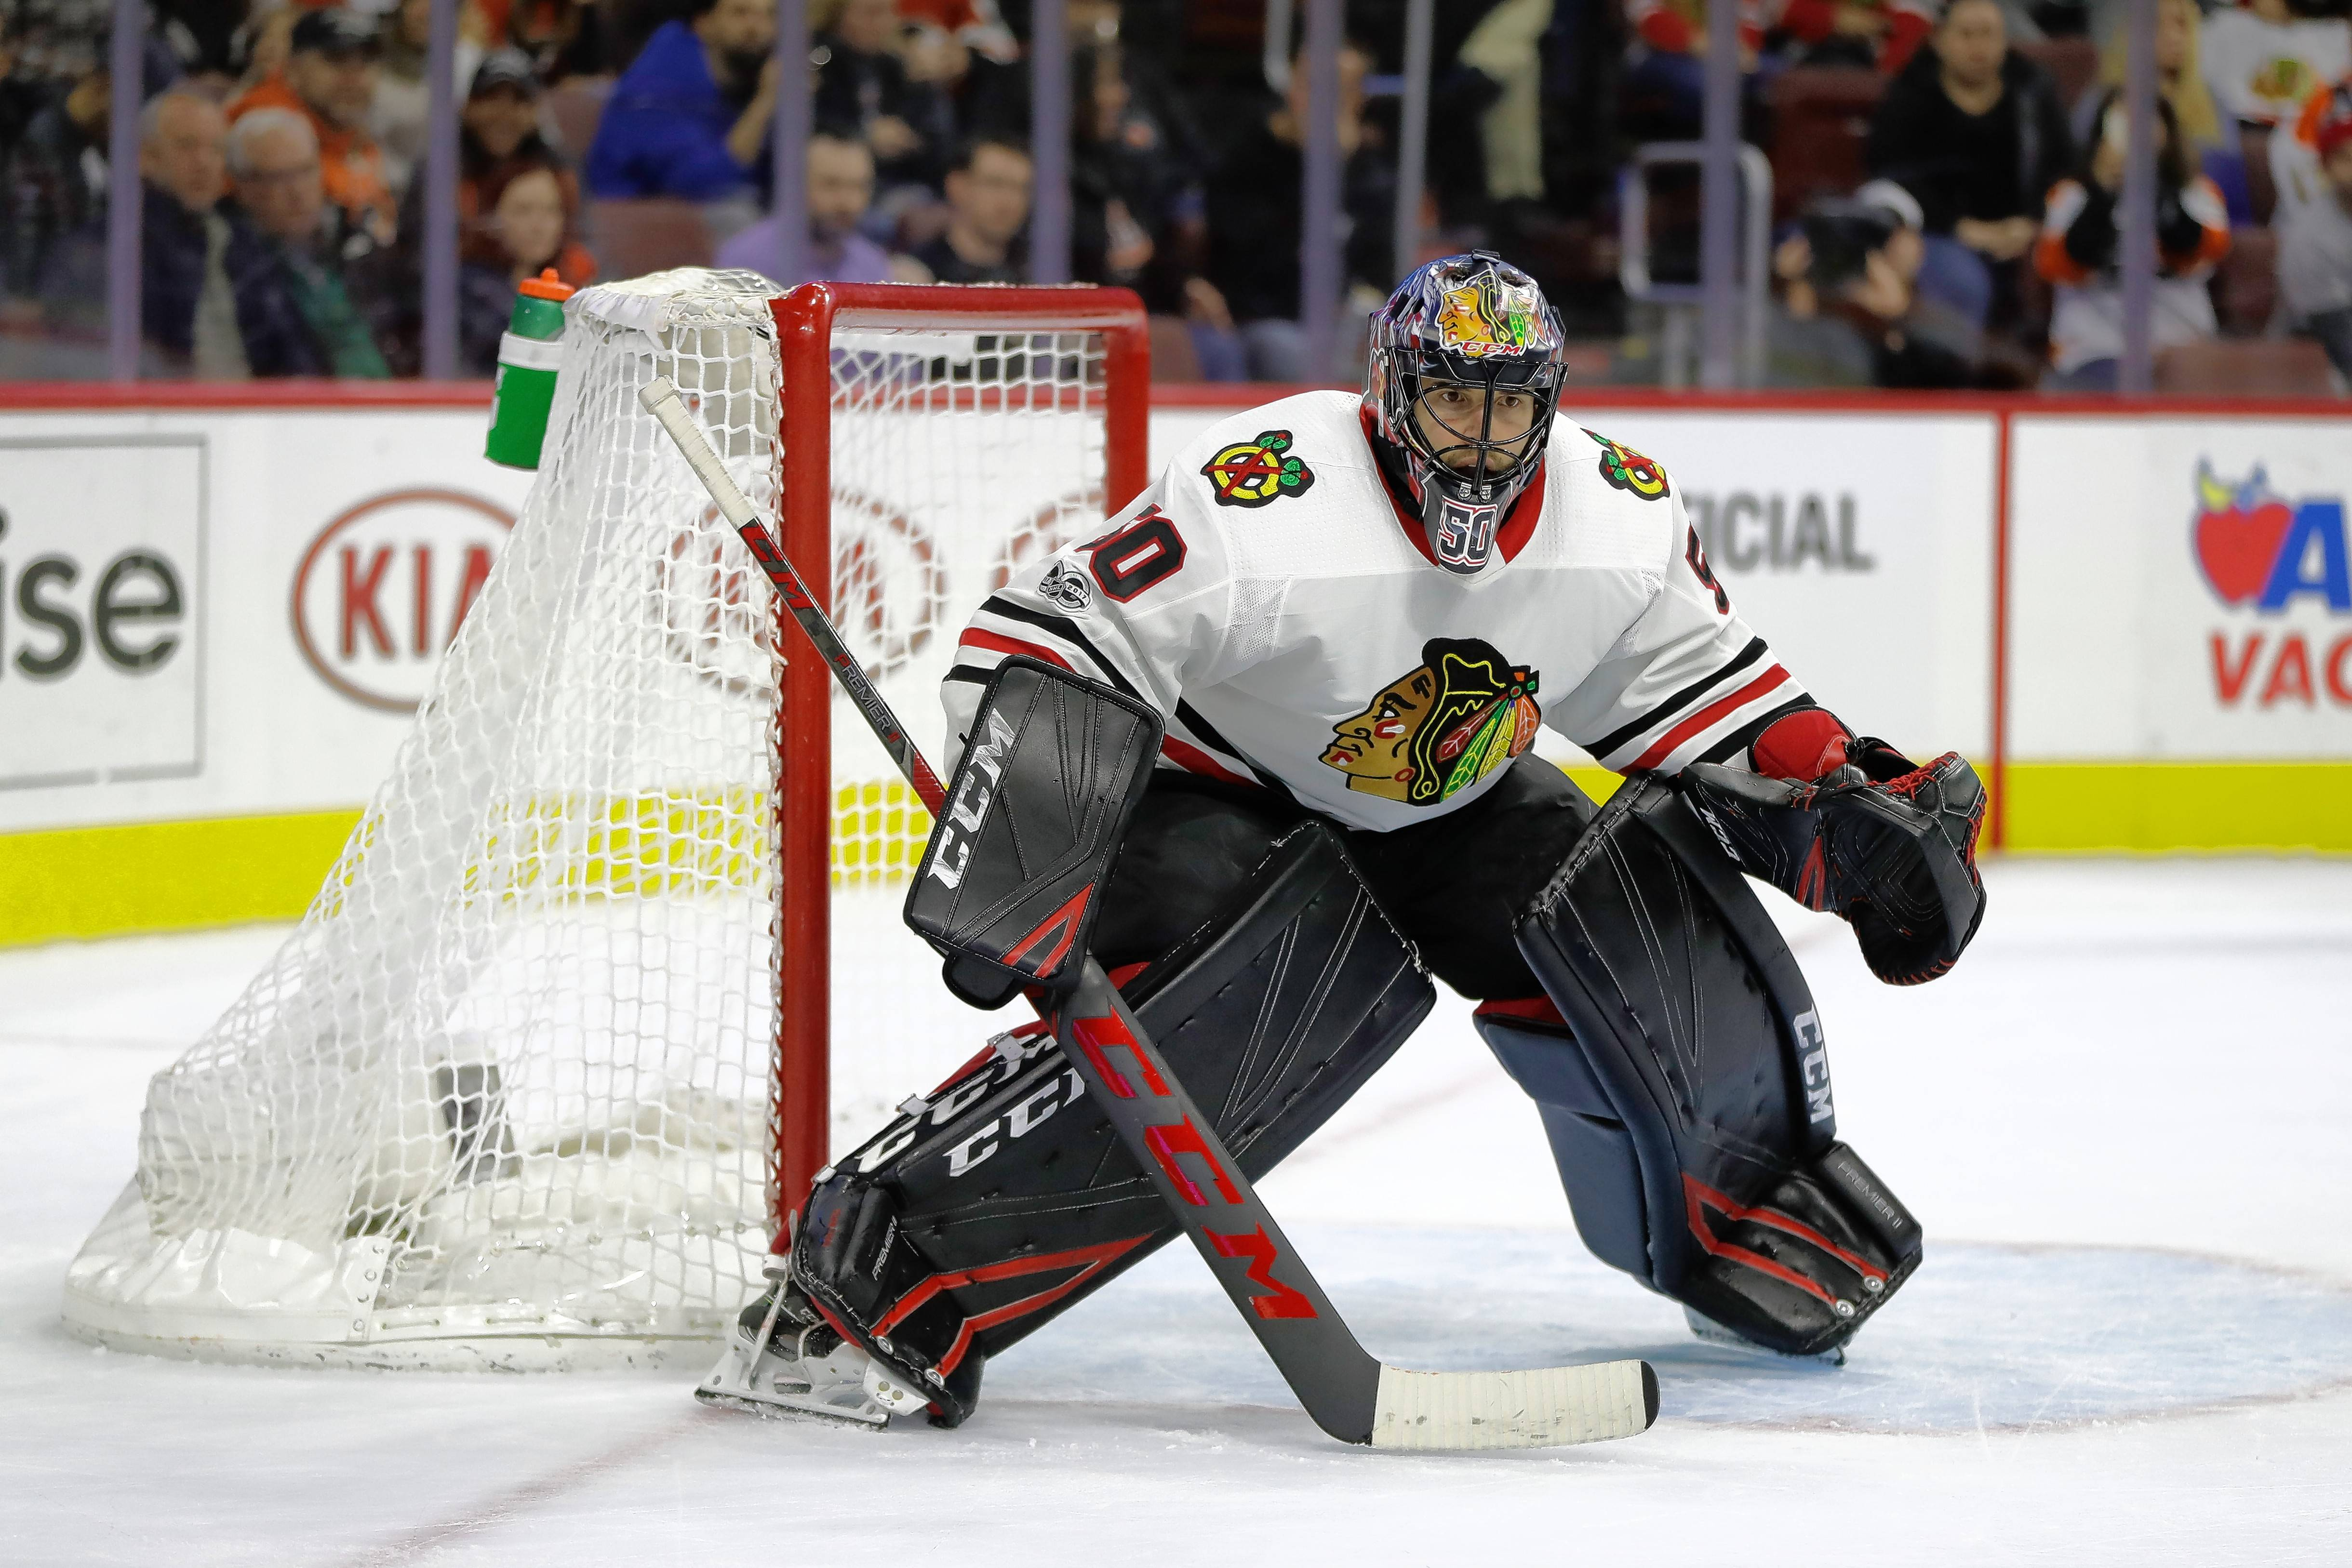 Chicago Blackhawks' Corey Crawford in action during an NHL hockey game against the Philadelphia Flyers, Thursday, Nov. 9, 2017, in Philadelphia. (AP Photo/Matt Slocum)